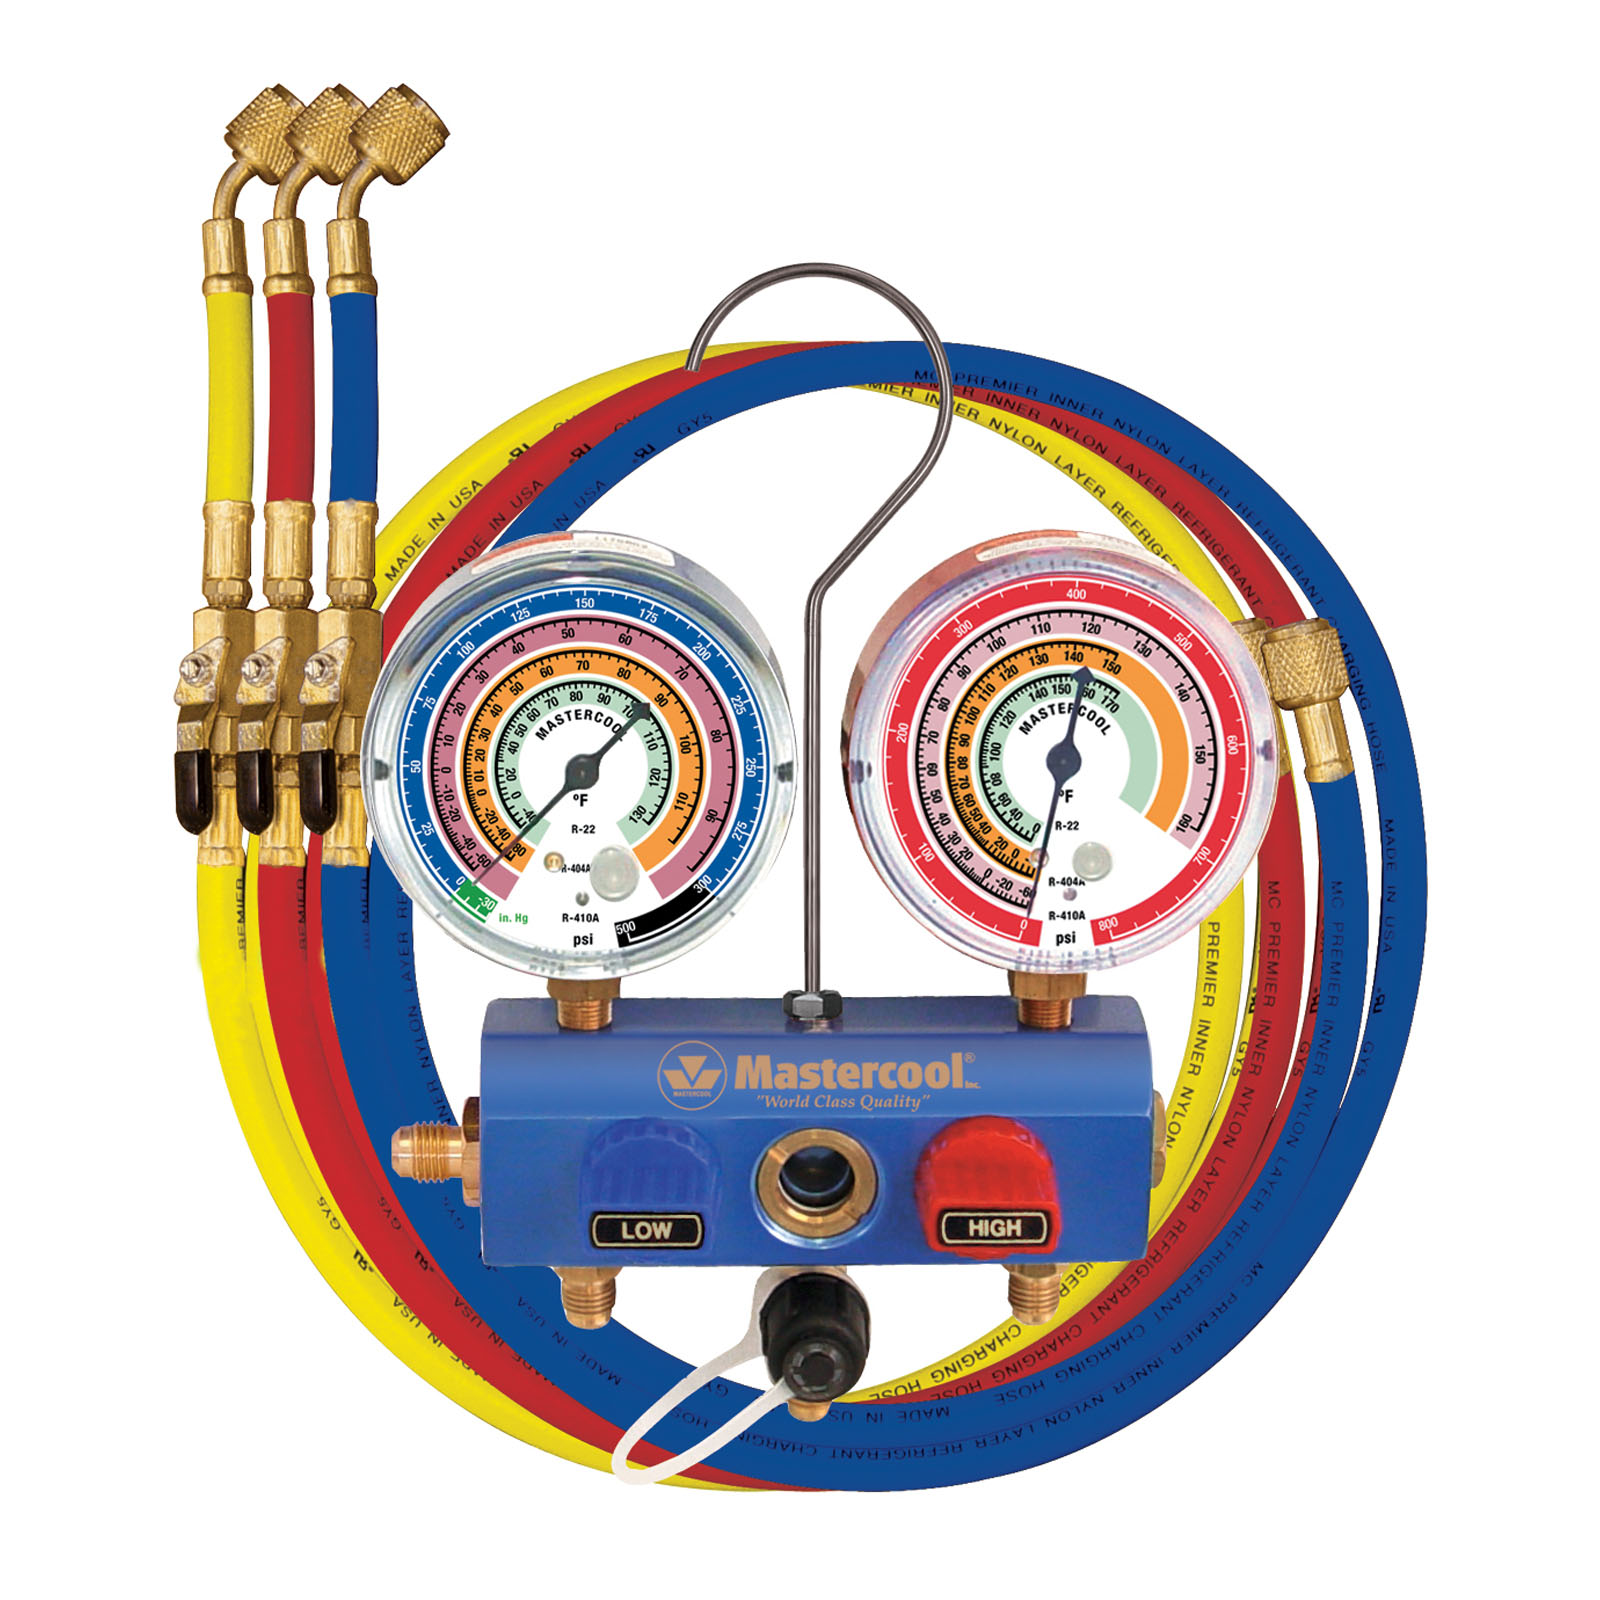 Mastercool Inc Manufacturer Of Air Conditioning Refrigeration Yellow Jacket Vacuum Pump Wiring Diagram Click To Enlarge